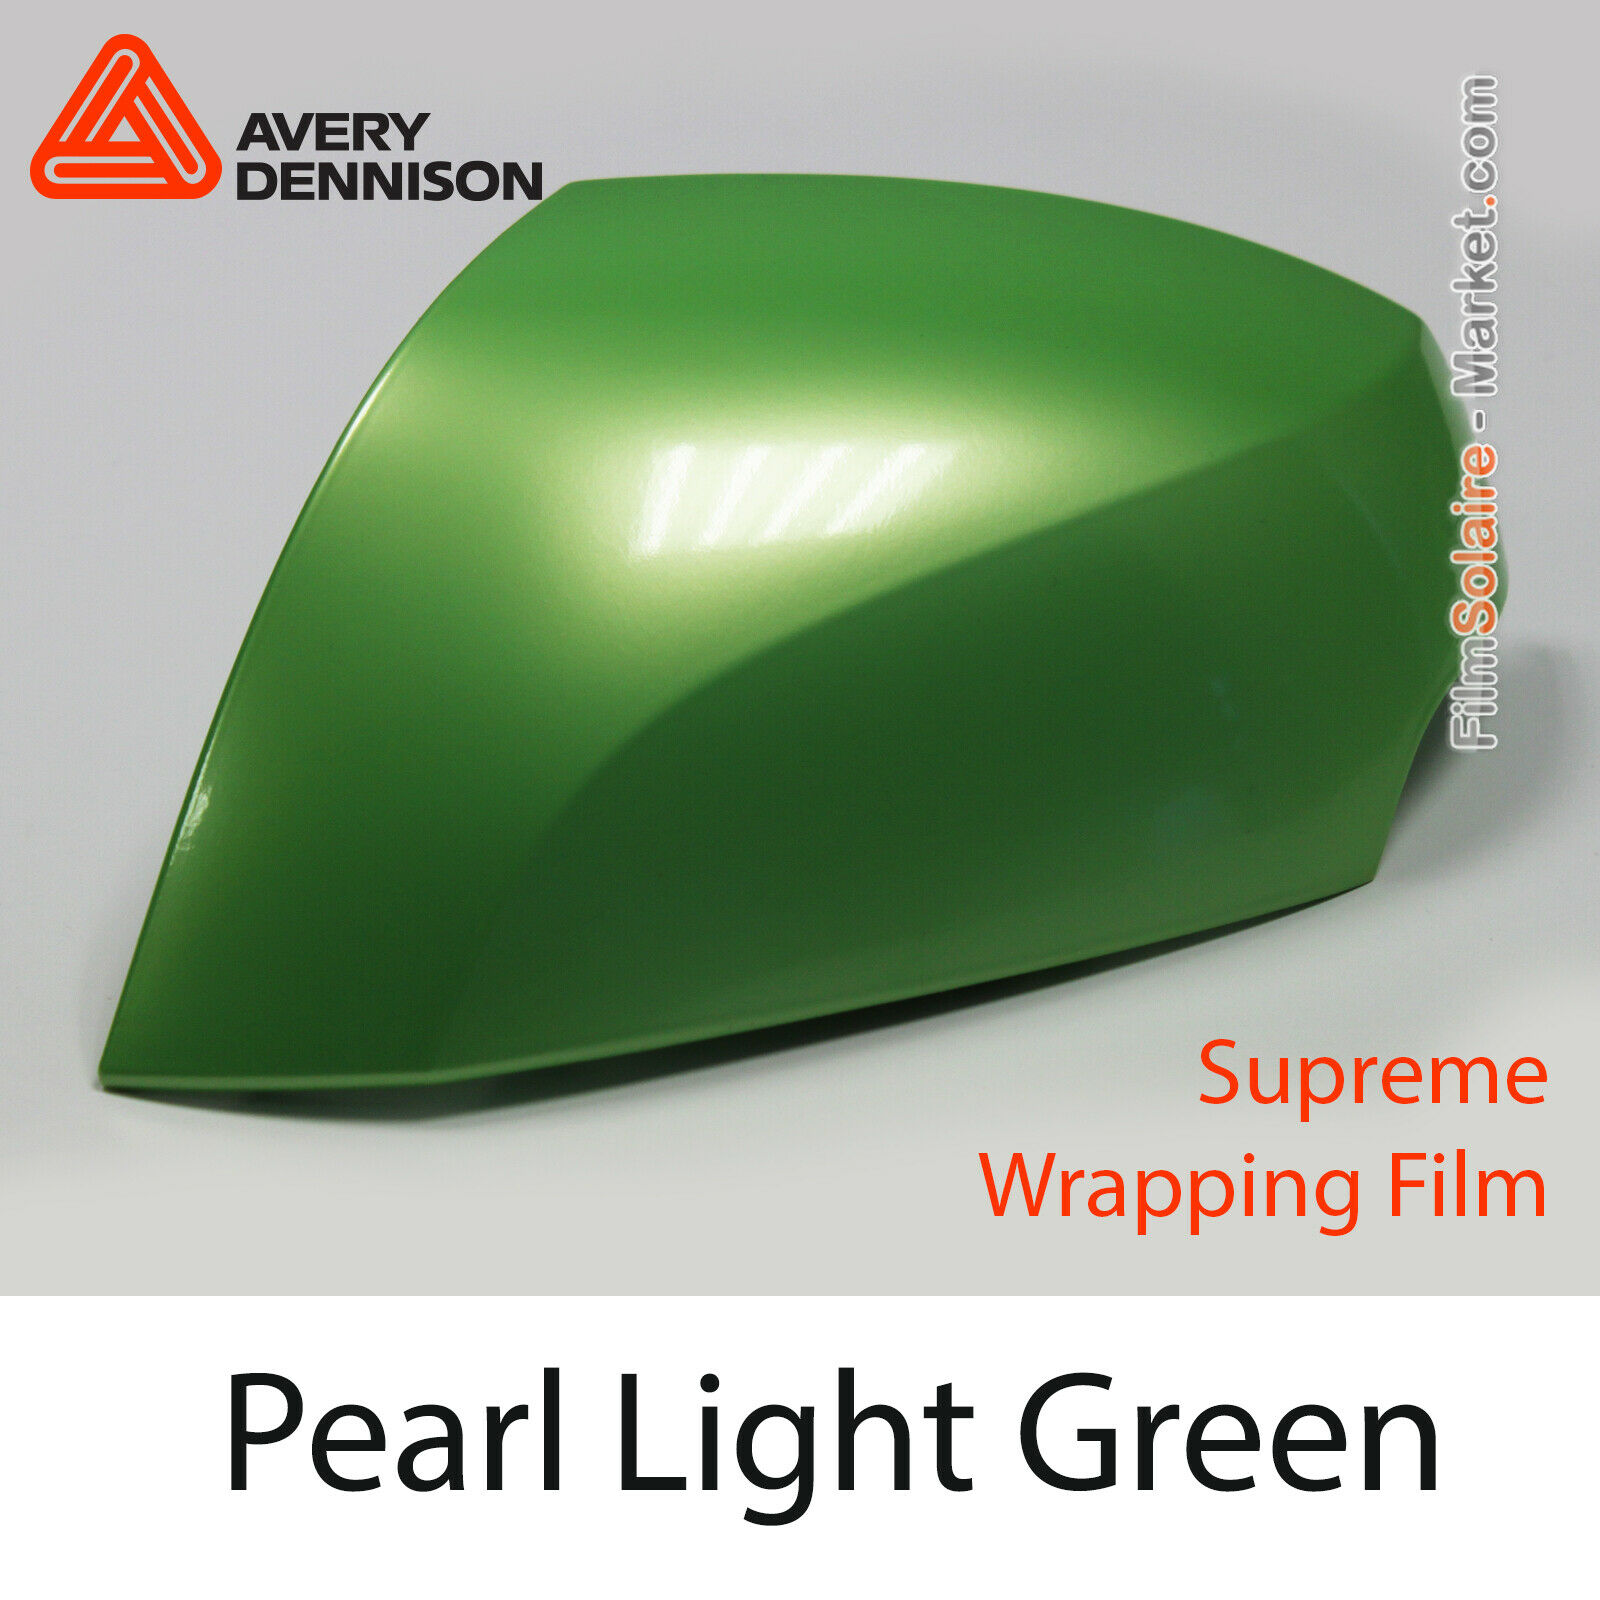 Pearl Light Grün, Avery Dennison Supreme Wrapping Film Total Covering AS8950001